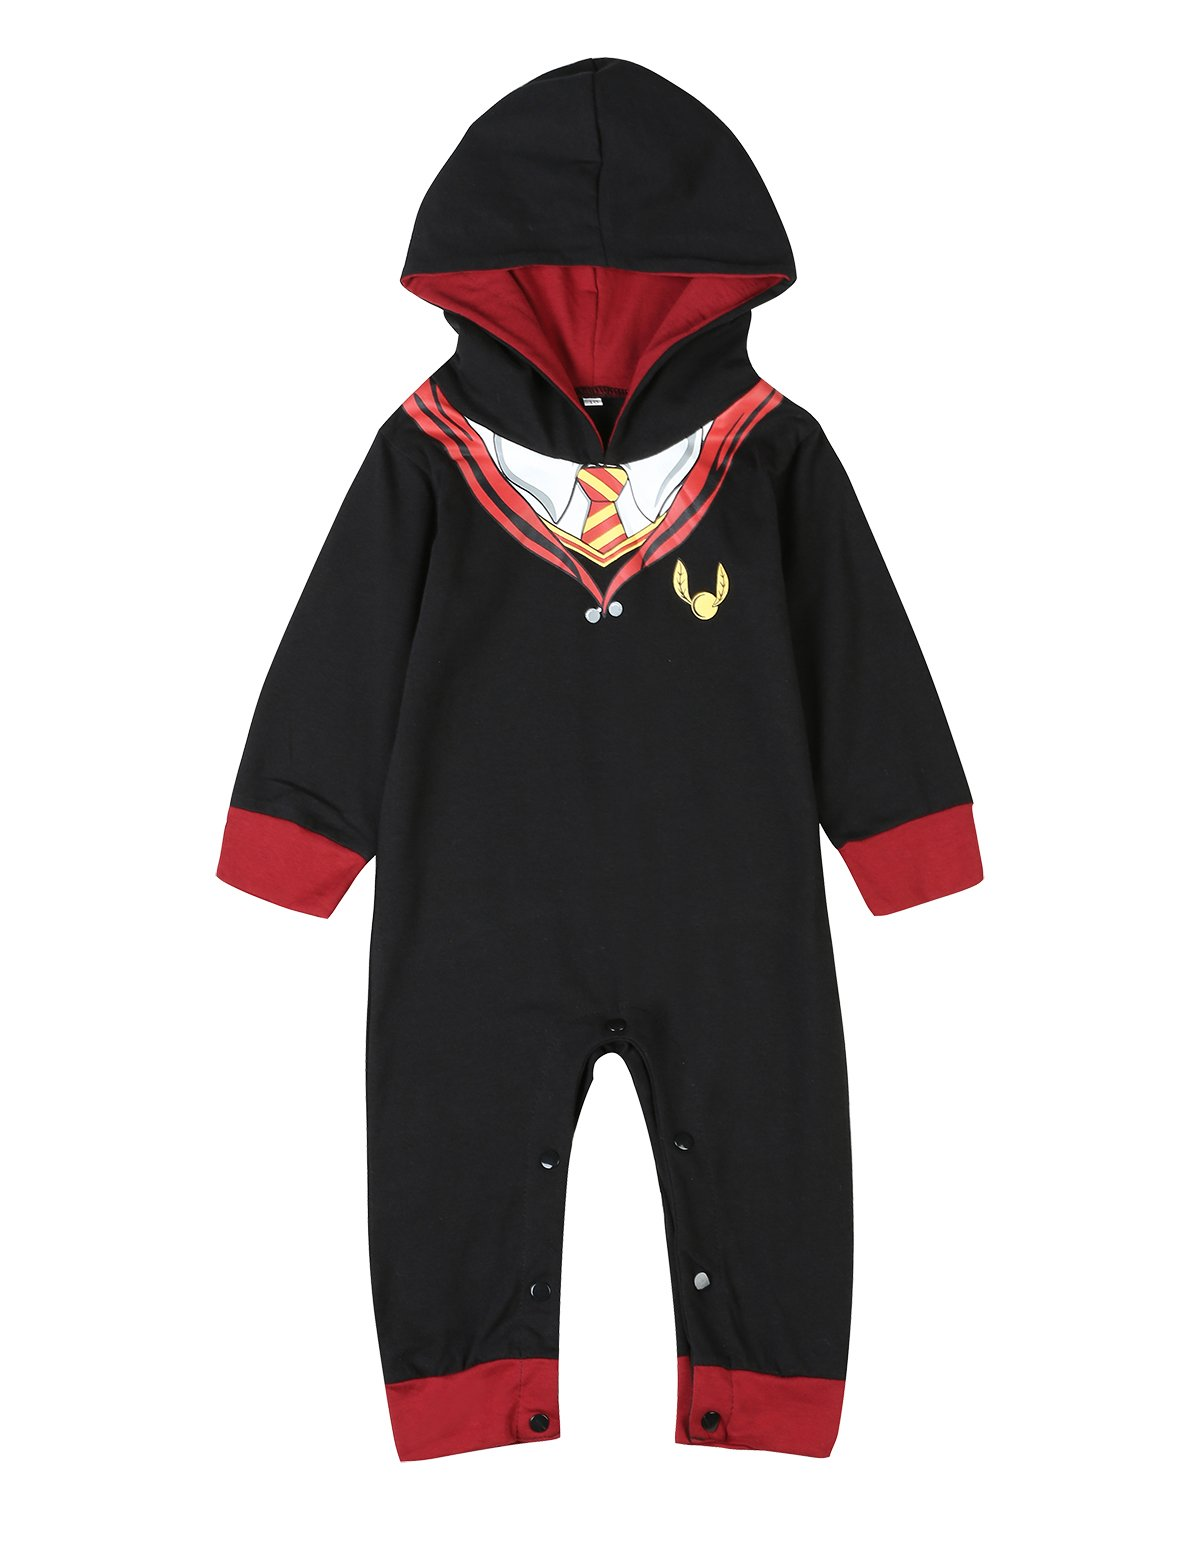 3Pcs Outfit Set Baby Boy Girl Infant Snuggle this Muggle Rompers (3-6 Months, Black)